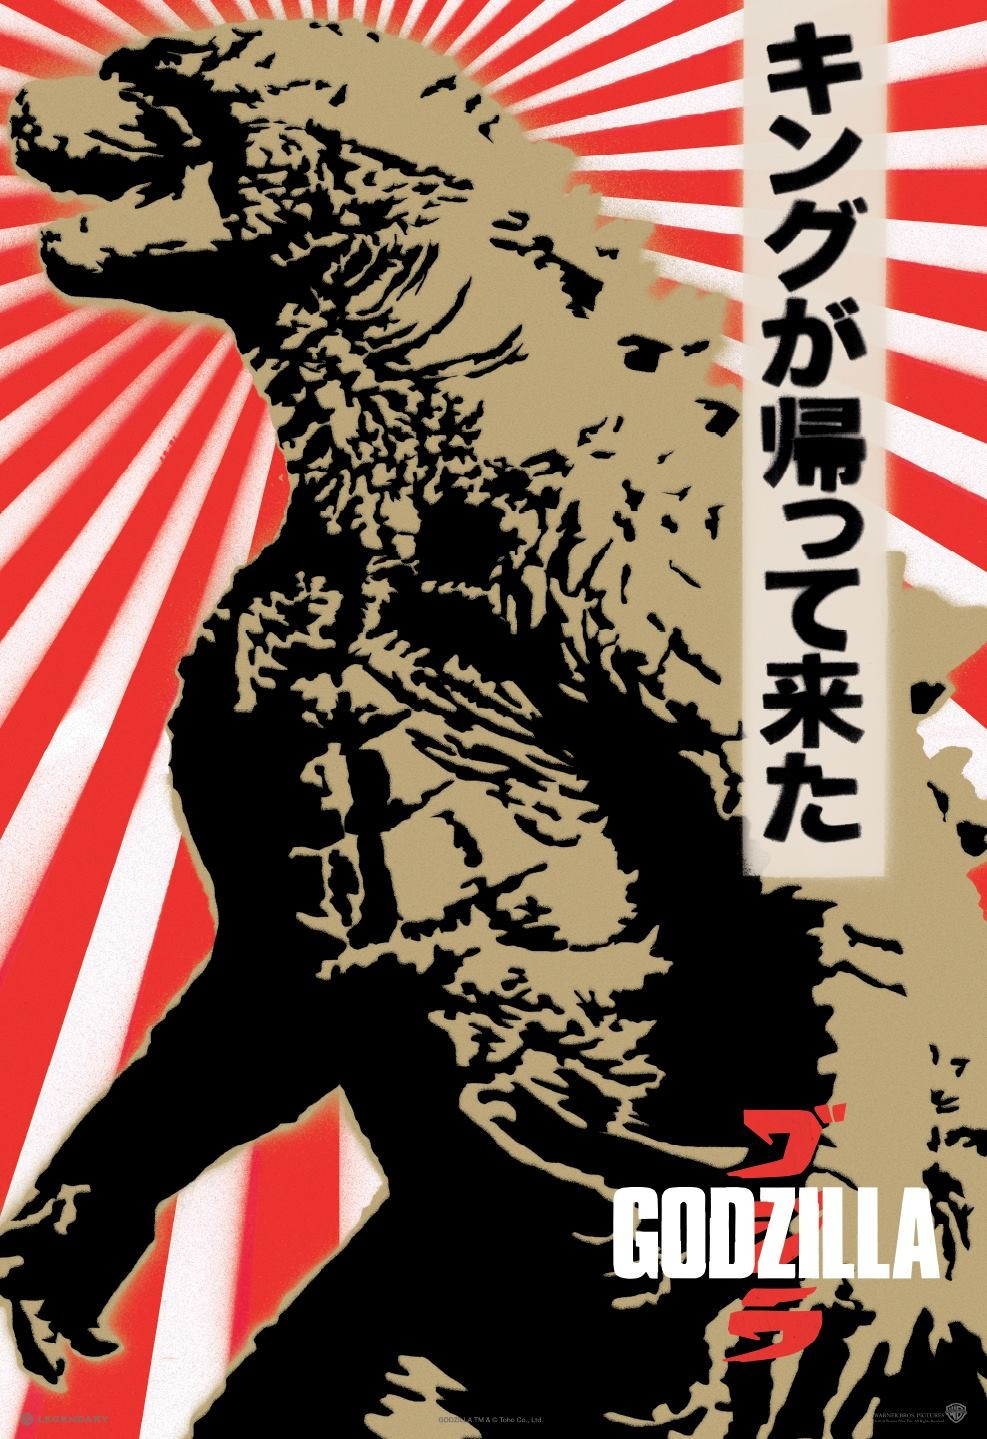 Godzilla-Official Poster Banner PROMO XLG-15ABRIL2014